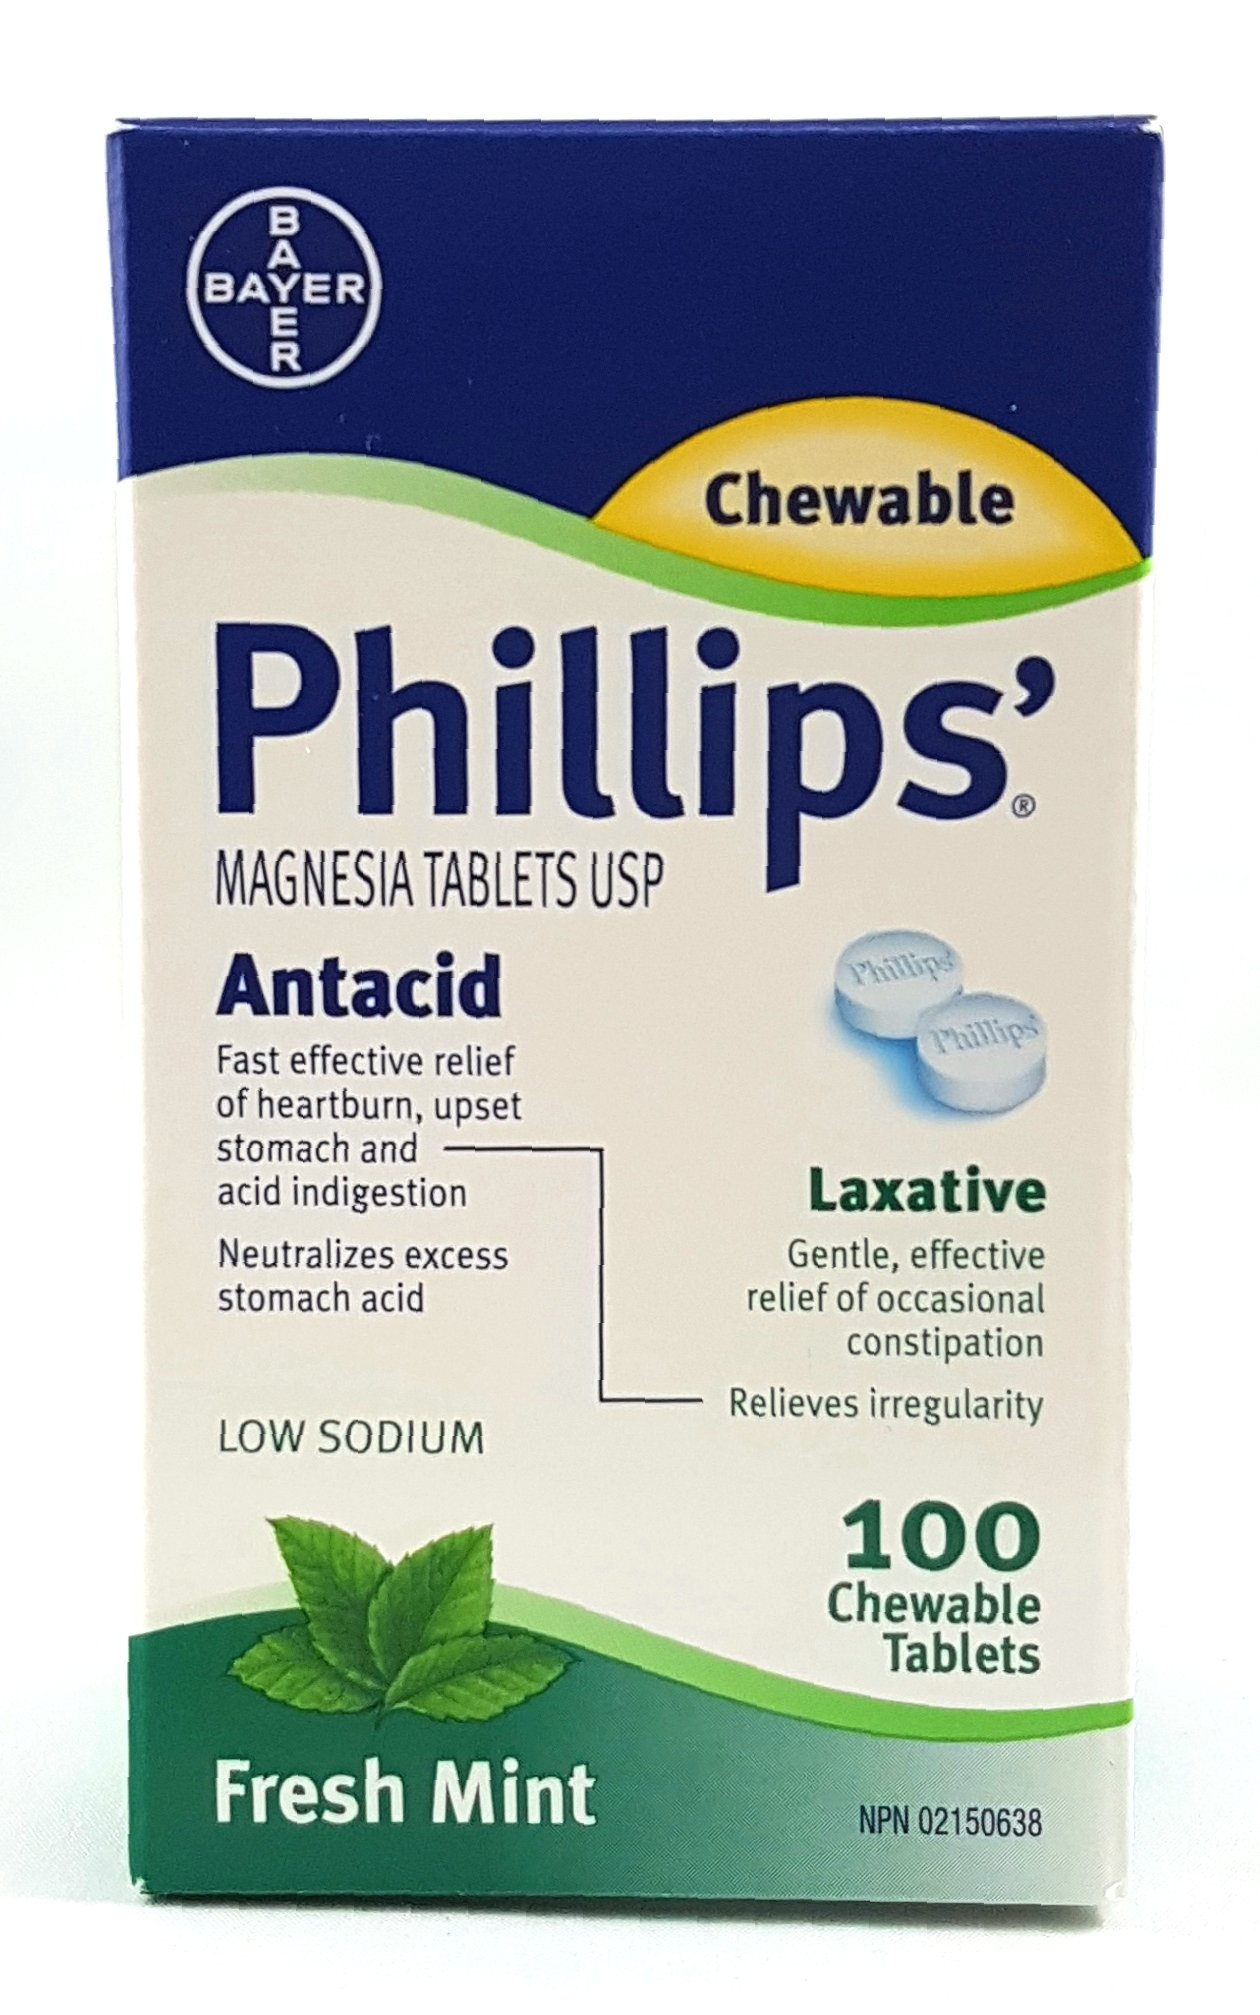 Phillips' Mint Chewable Laxative Tablets, 100 Count Box